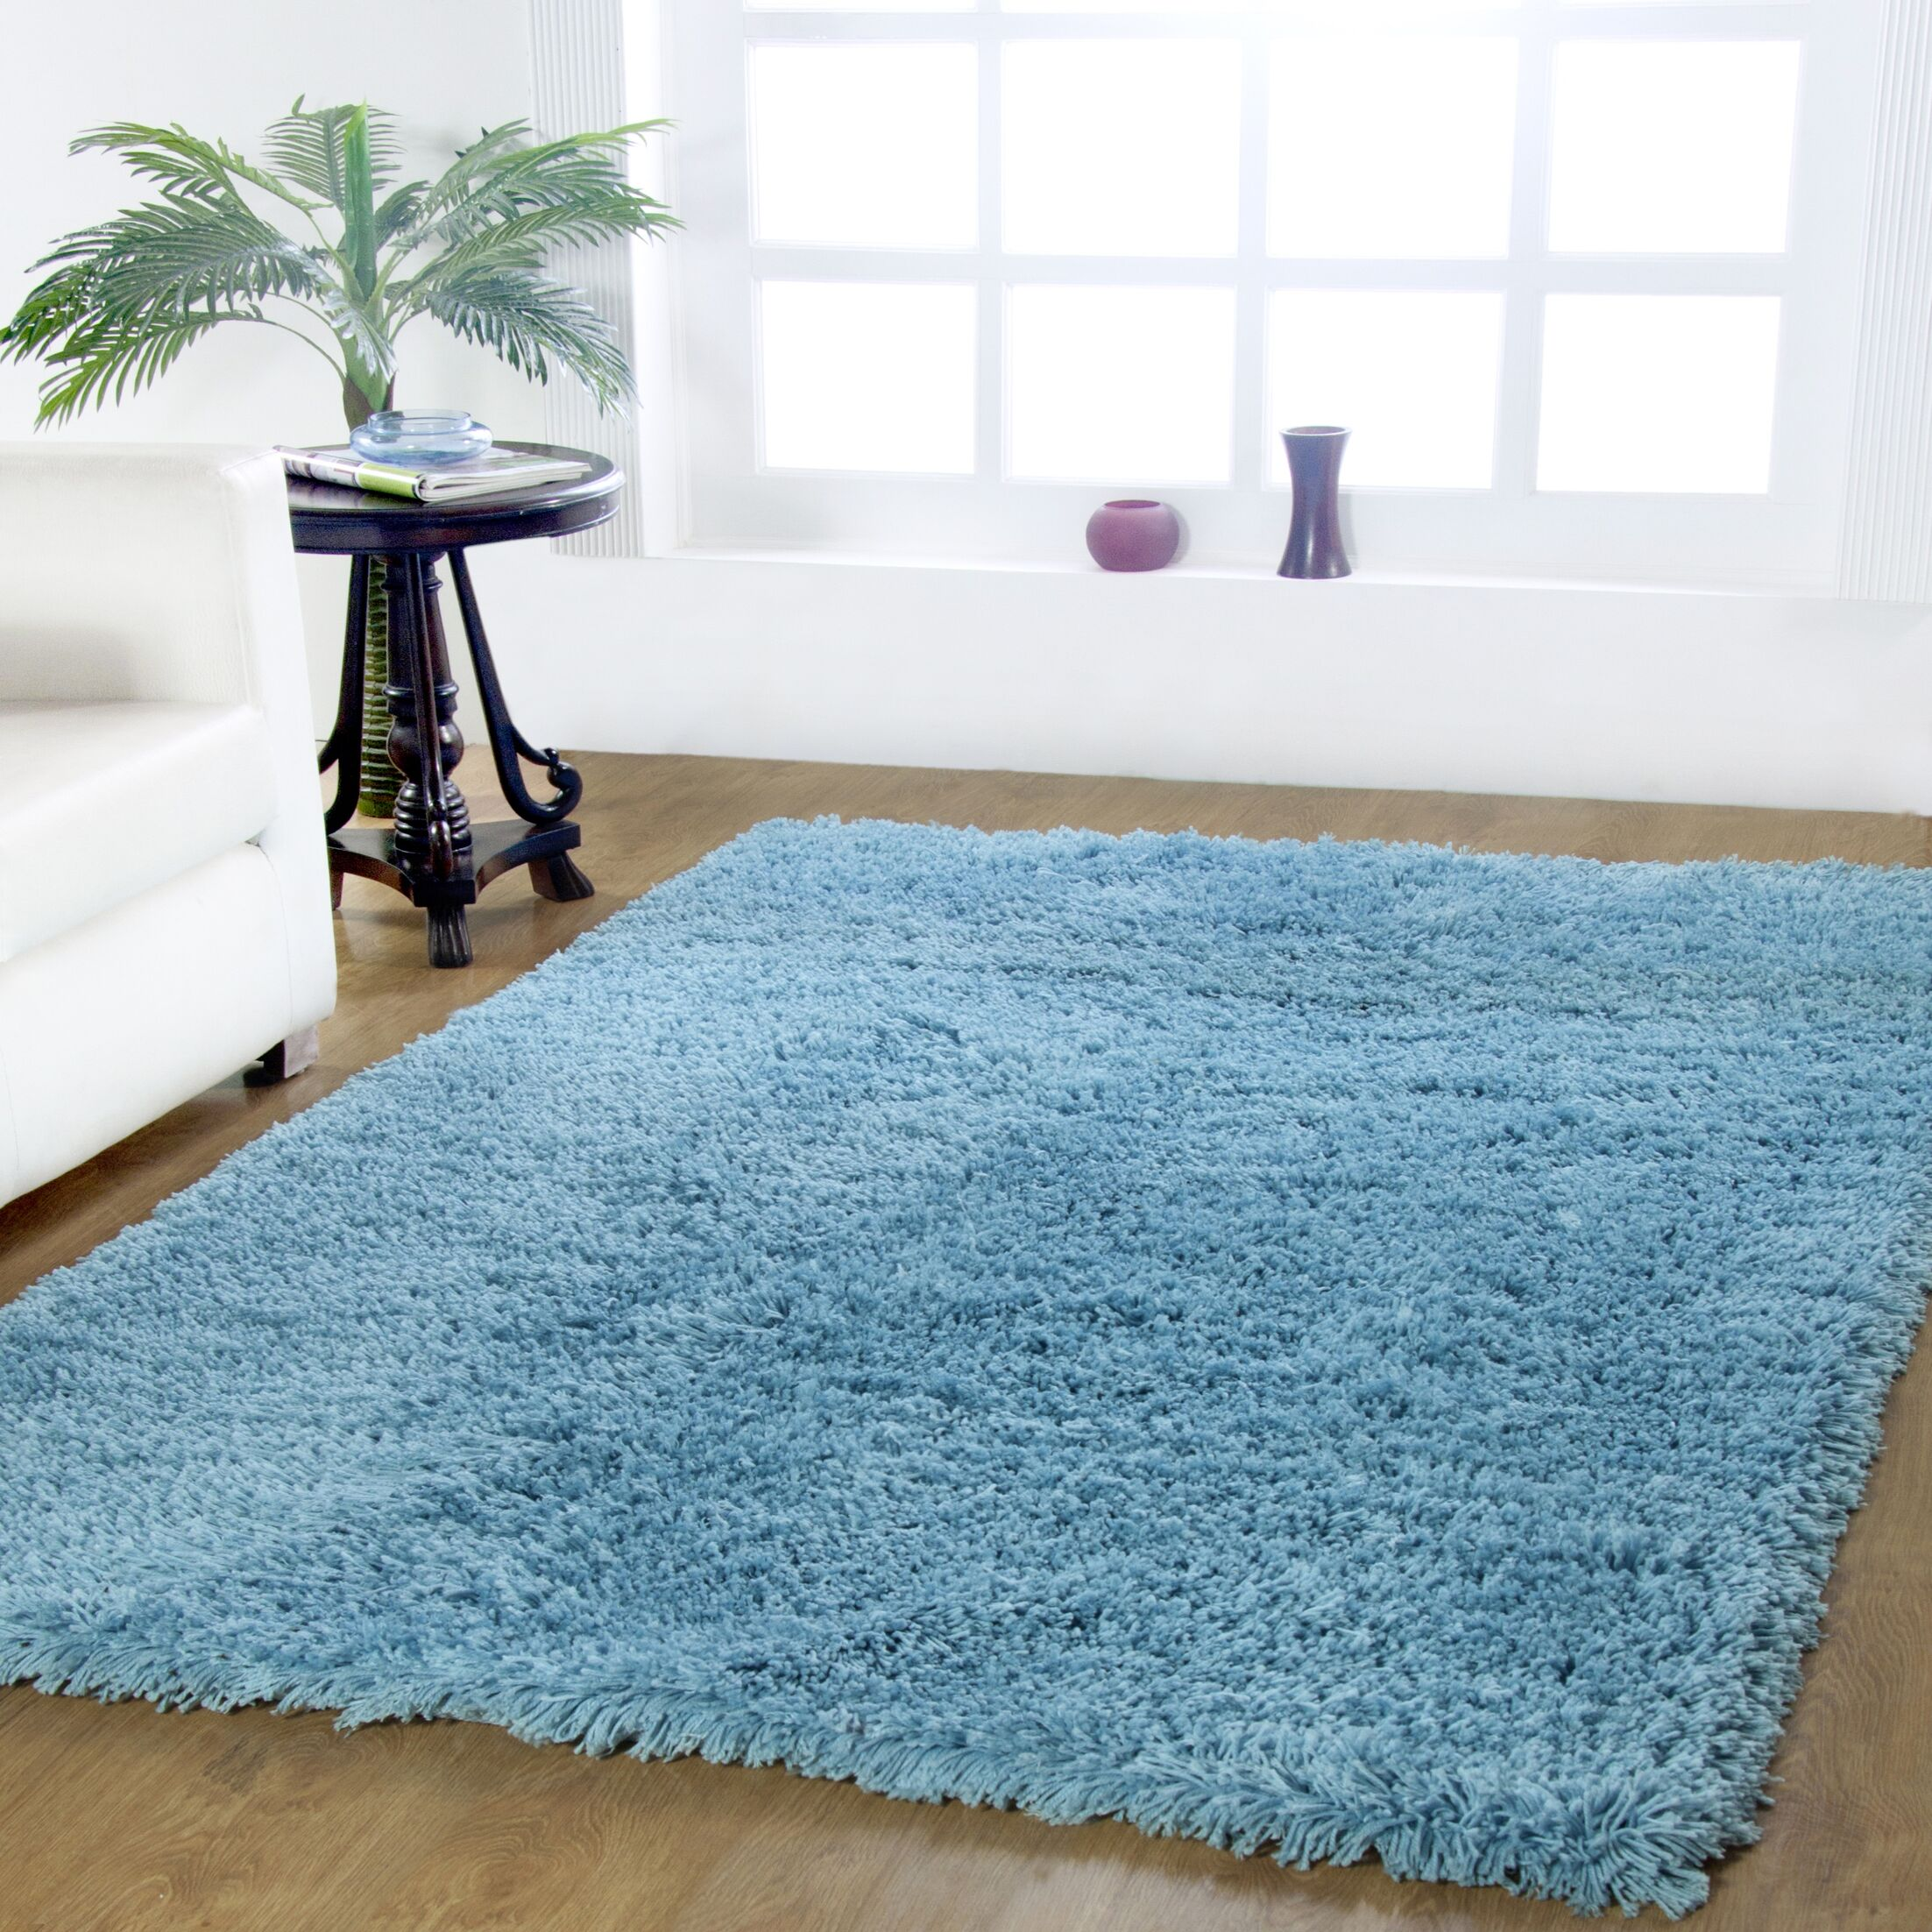 Affinity Hand-woven Blue Area Rug Rug Size: Rectangle 4' x 6'